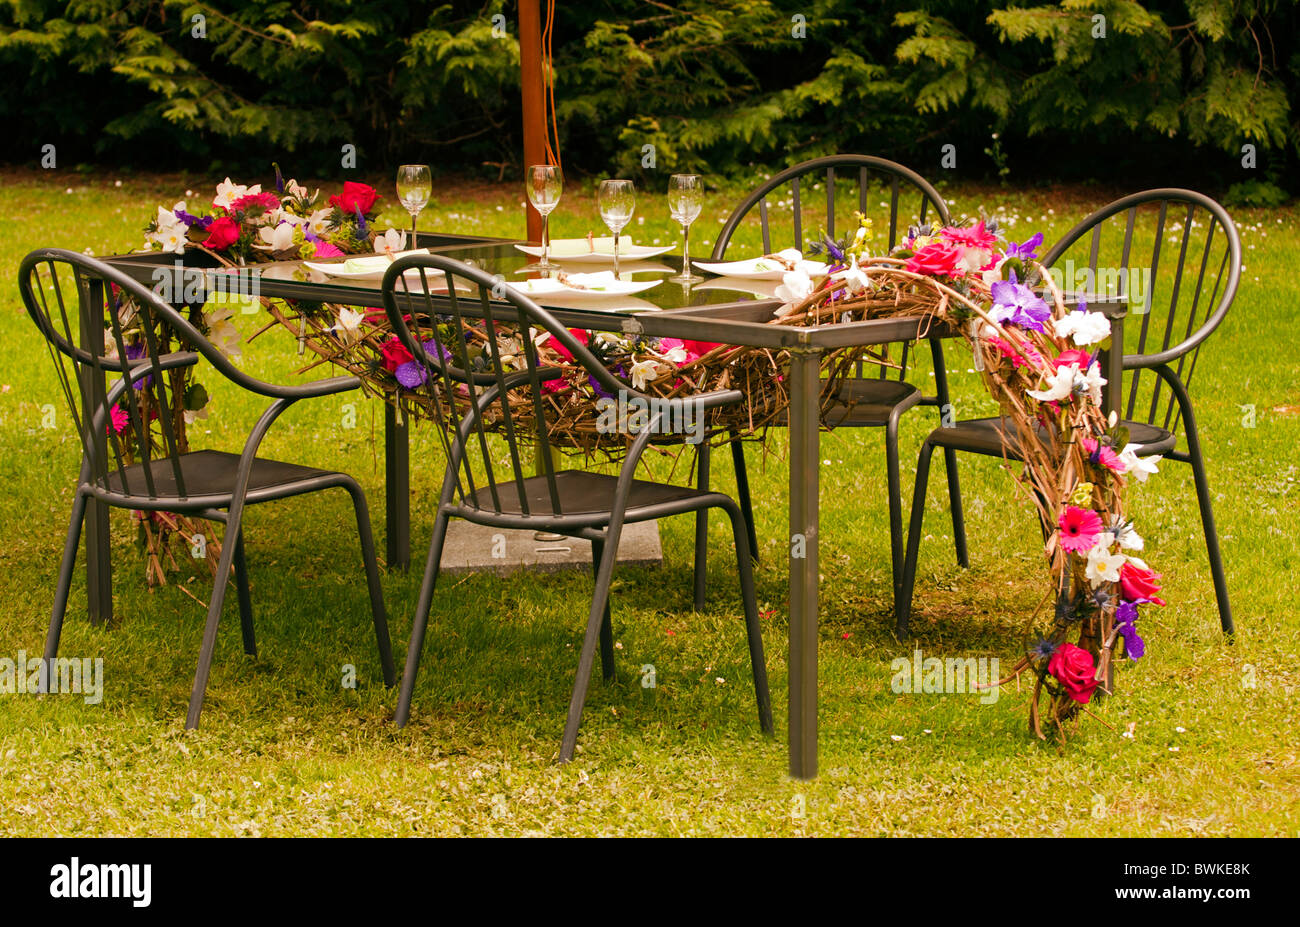 Table and chairs setup outside in the garden. - Stock Image